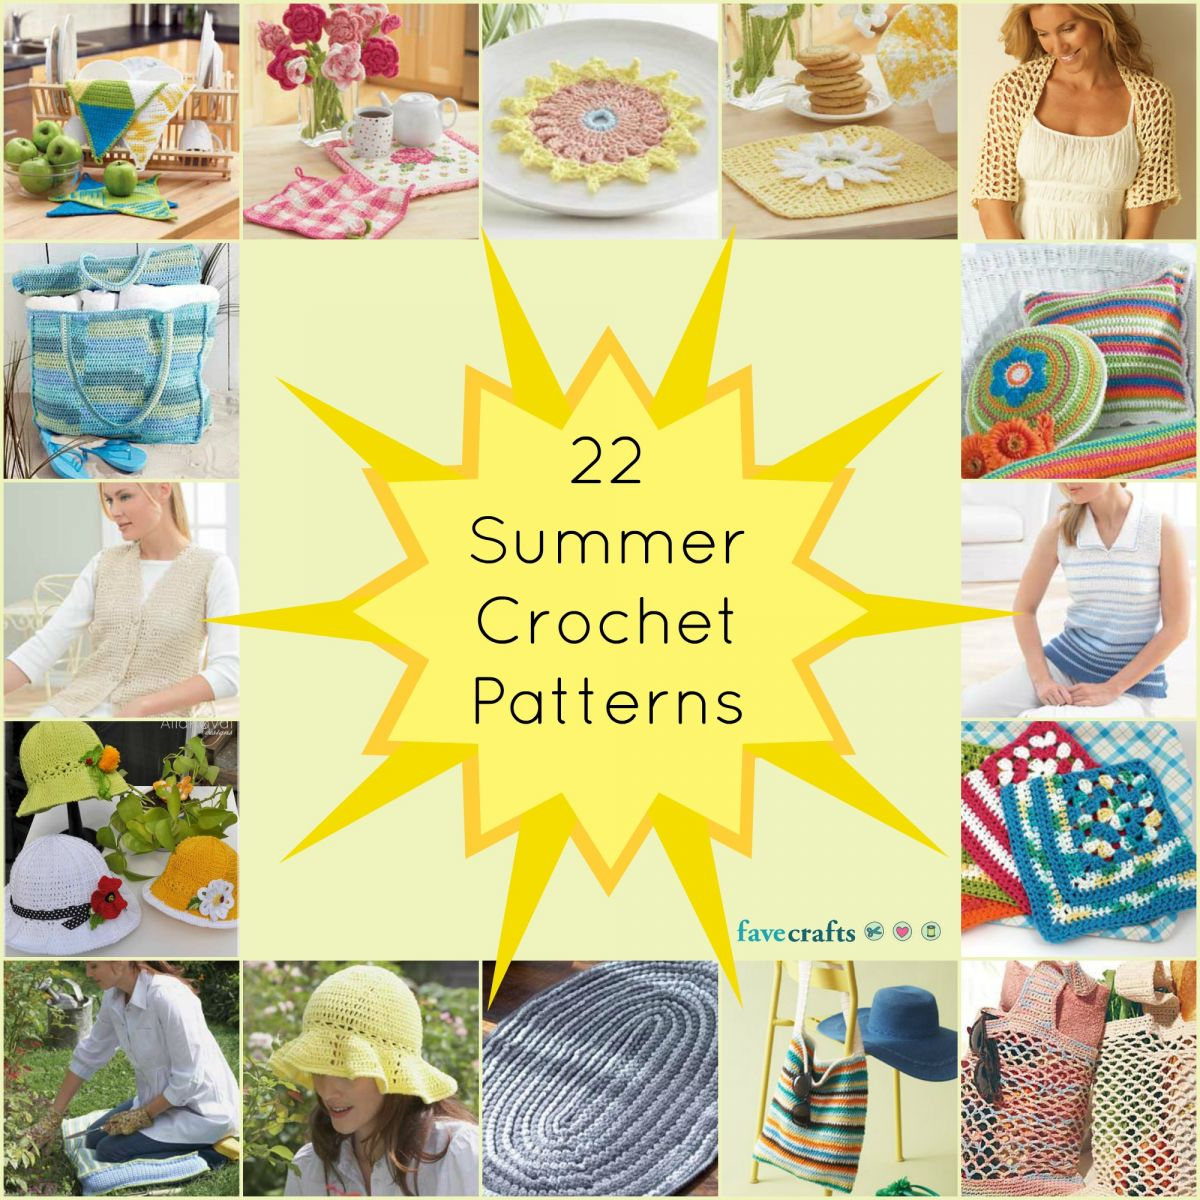 22 Summer Crochet Patterns